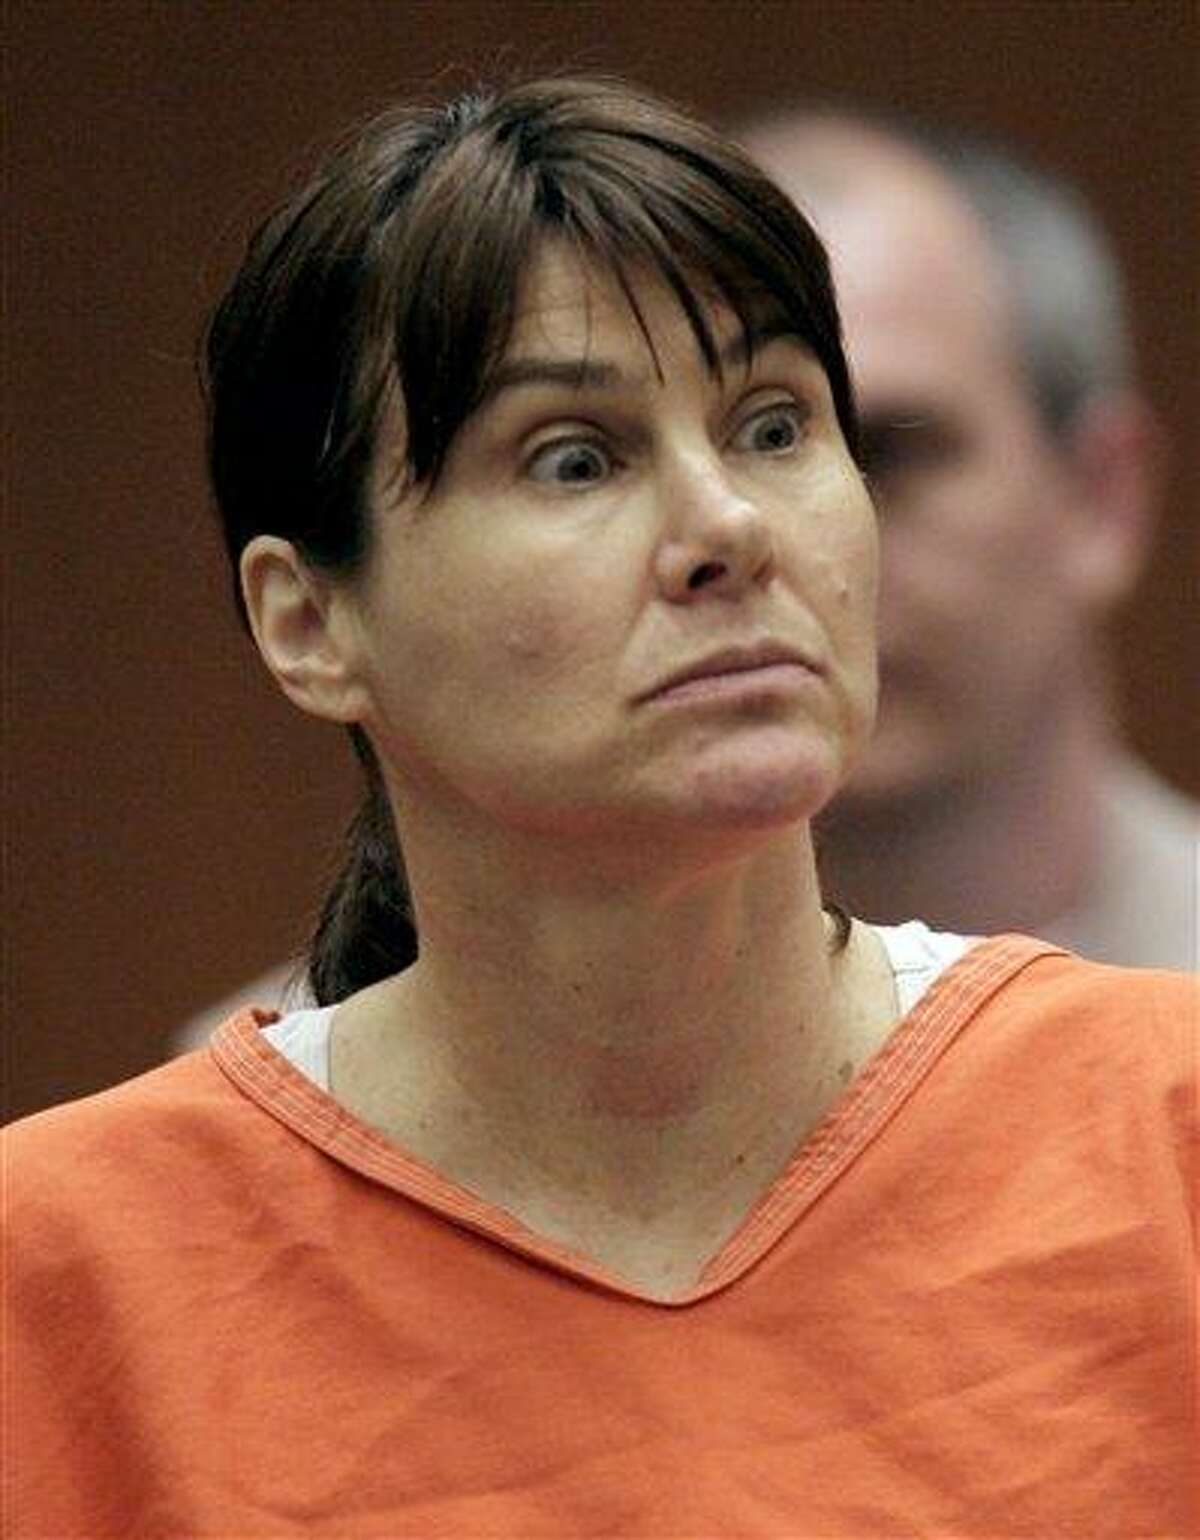 In this July 29, 2009 file photo, former Los Angeles police officer Stephanie Lazarus appears in court in Los Angeles. Lazarus is accused of killing an ex-boyfriend's wife 23 years ago when she was a young officer. Opening statements in Lazarus' trial begin Monday. Associated Press